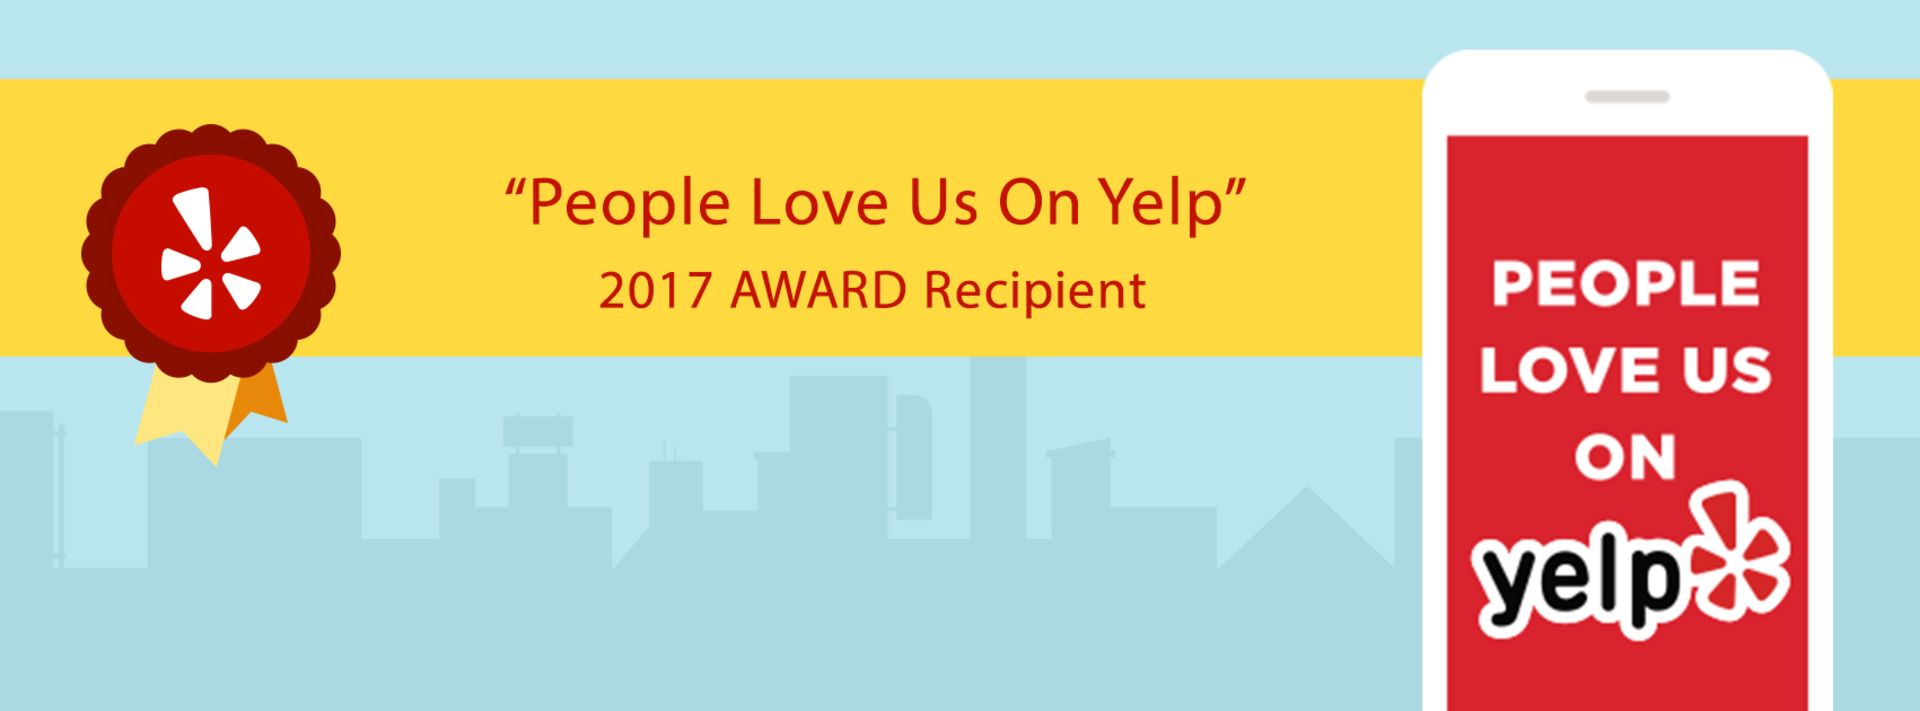 Yelp Loves Us Too!